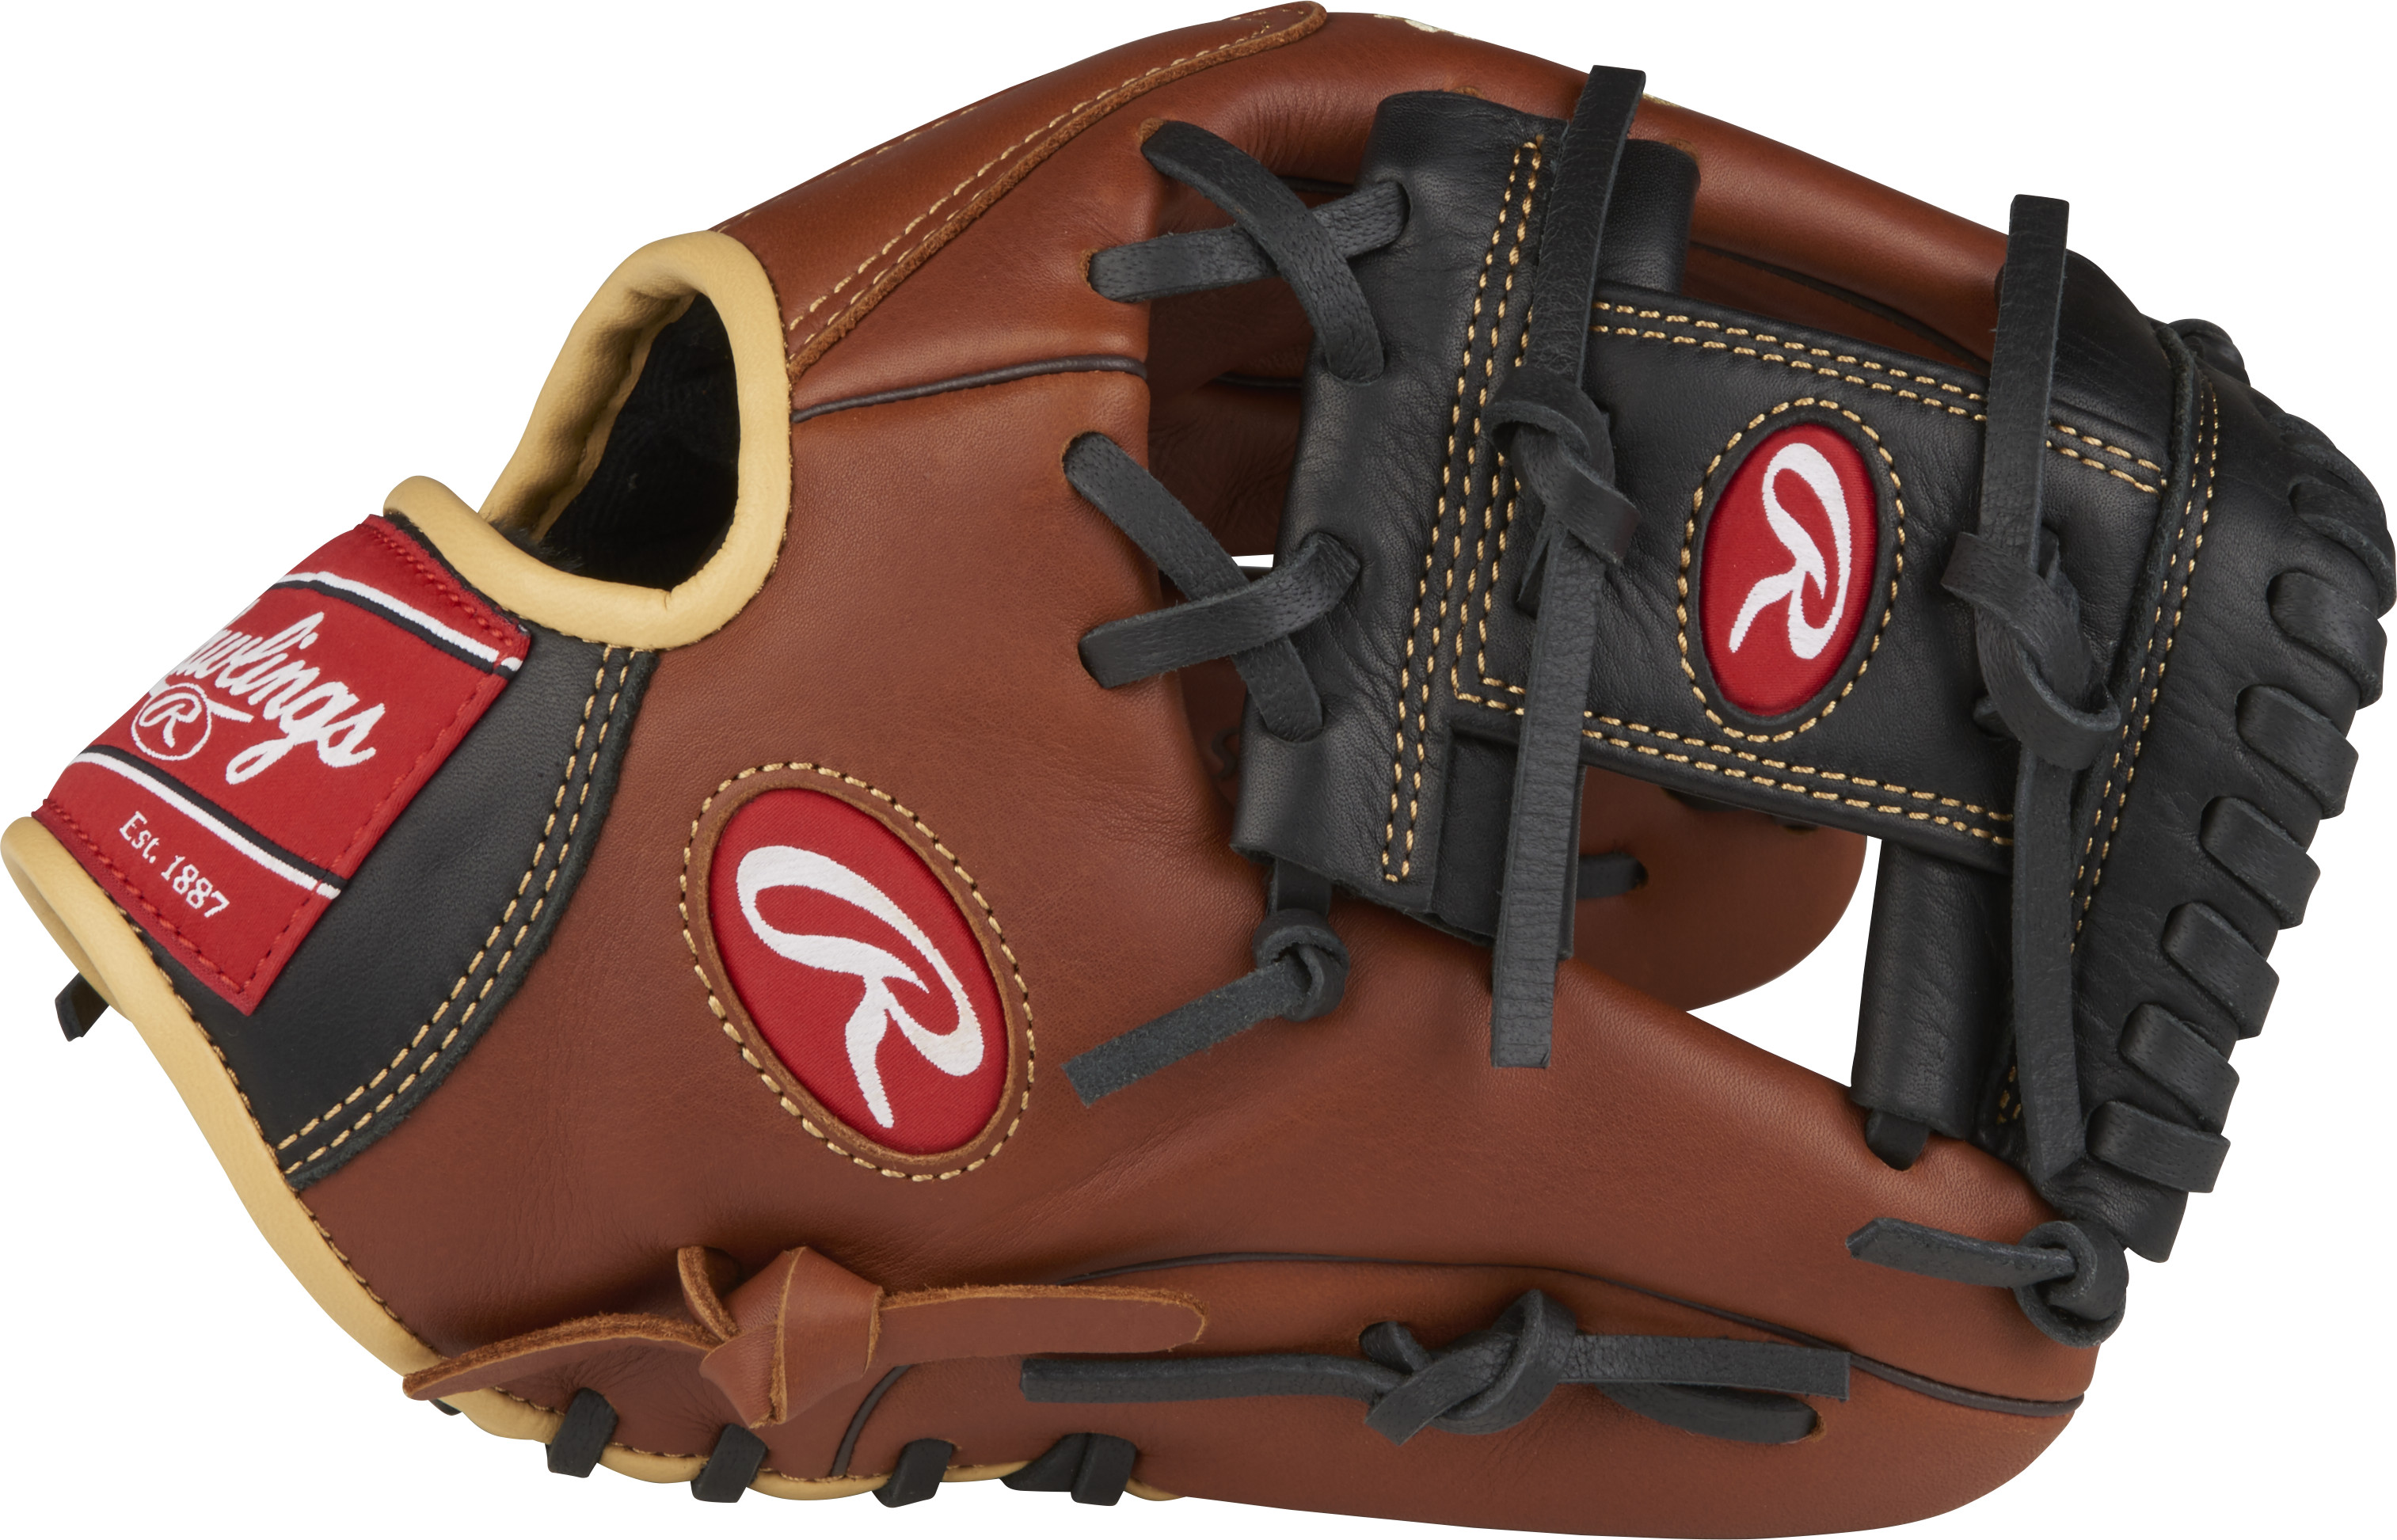 http://www.bestbatdeals.com/images/gloves/rawlings/S1150I-3.jpg